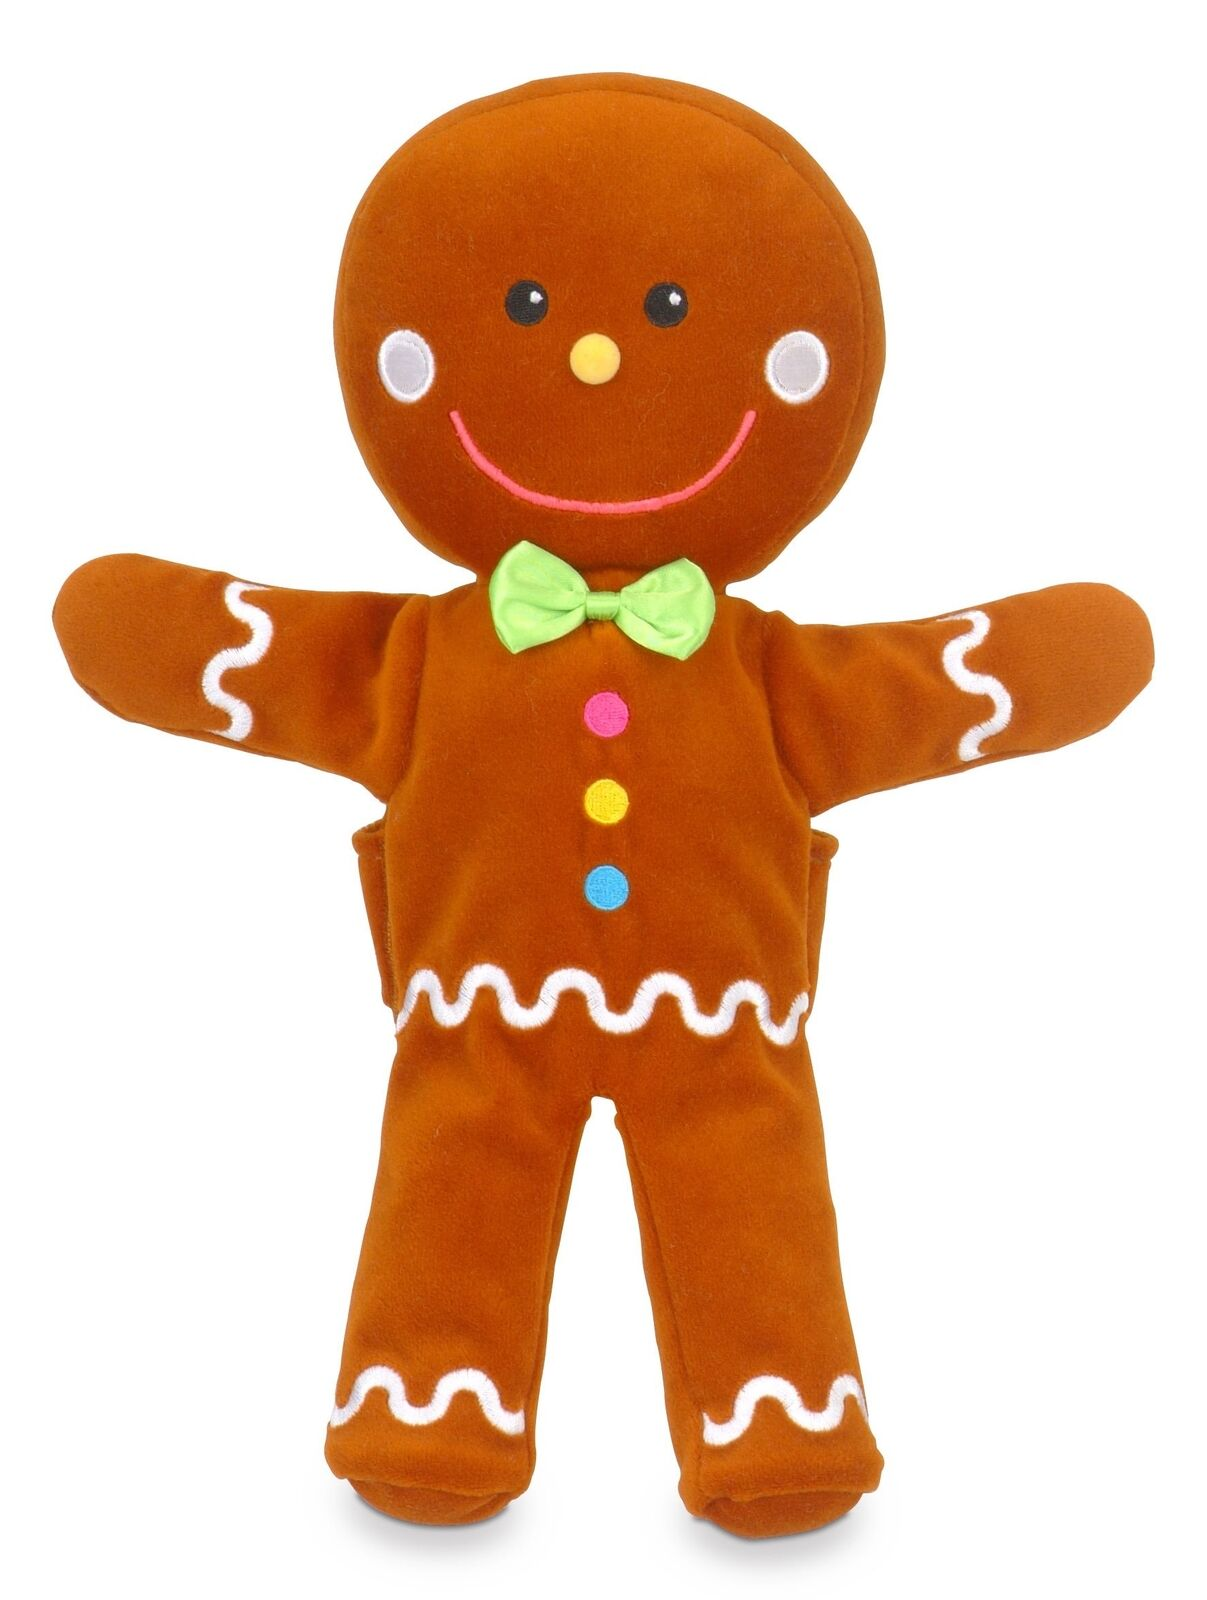 Fiesta Crafts Crafts Crafts Gingerbread Man Hand and Finger Puppet Set 2c6252